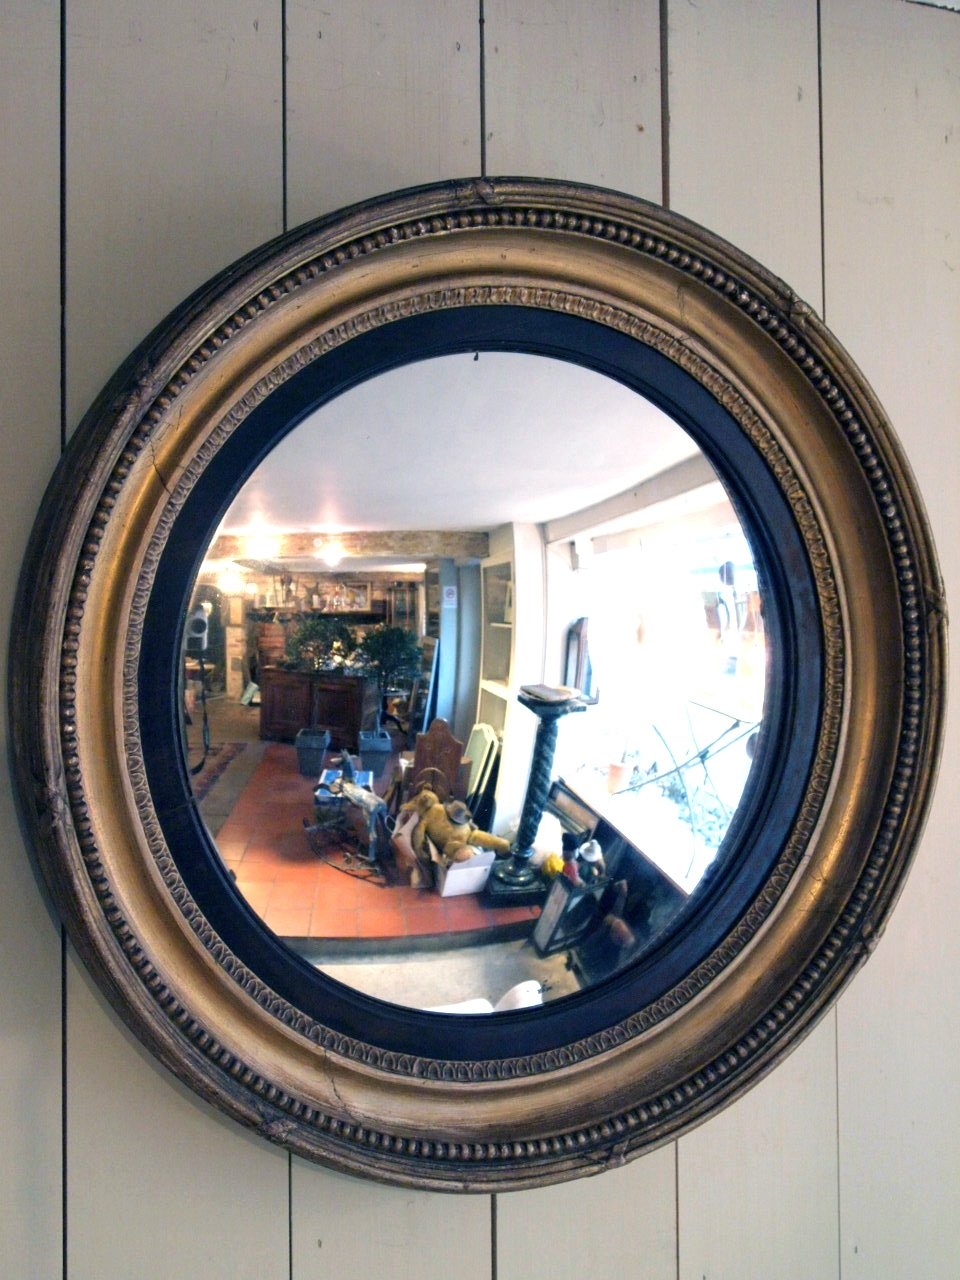 Antique Round Convex Mirror Puckhaber Decorative Antiques Regarding Decorative Convex Mirrors (Image 4 of 15)